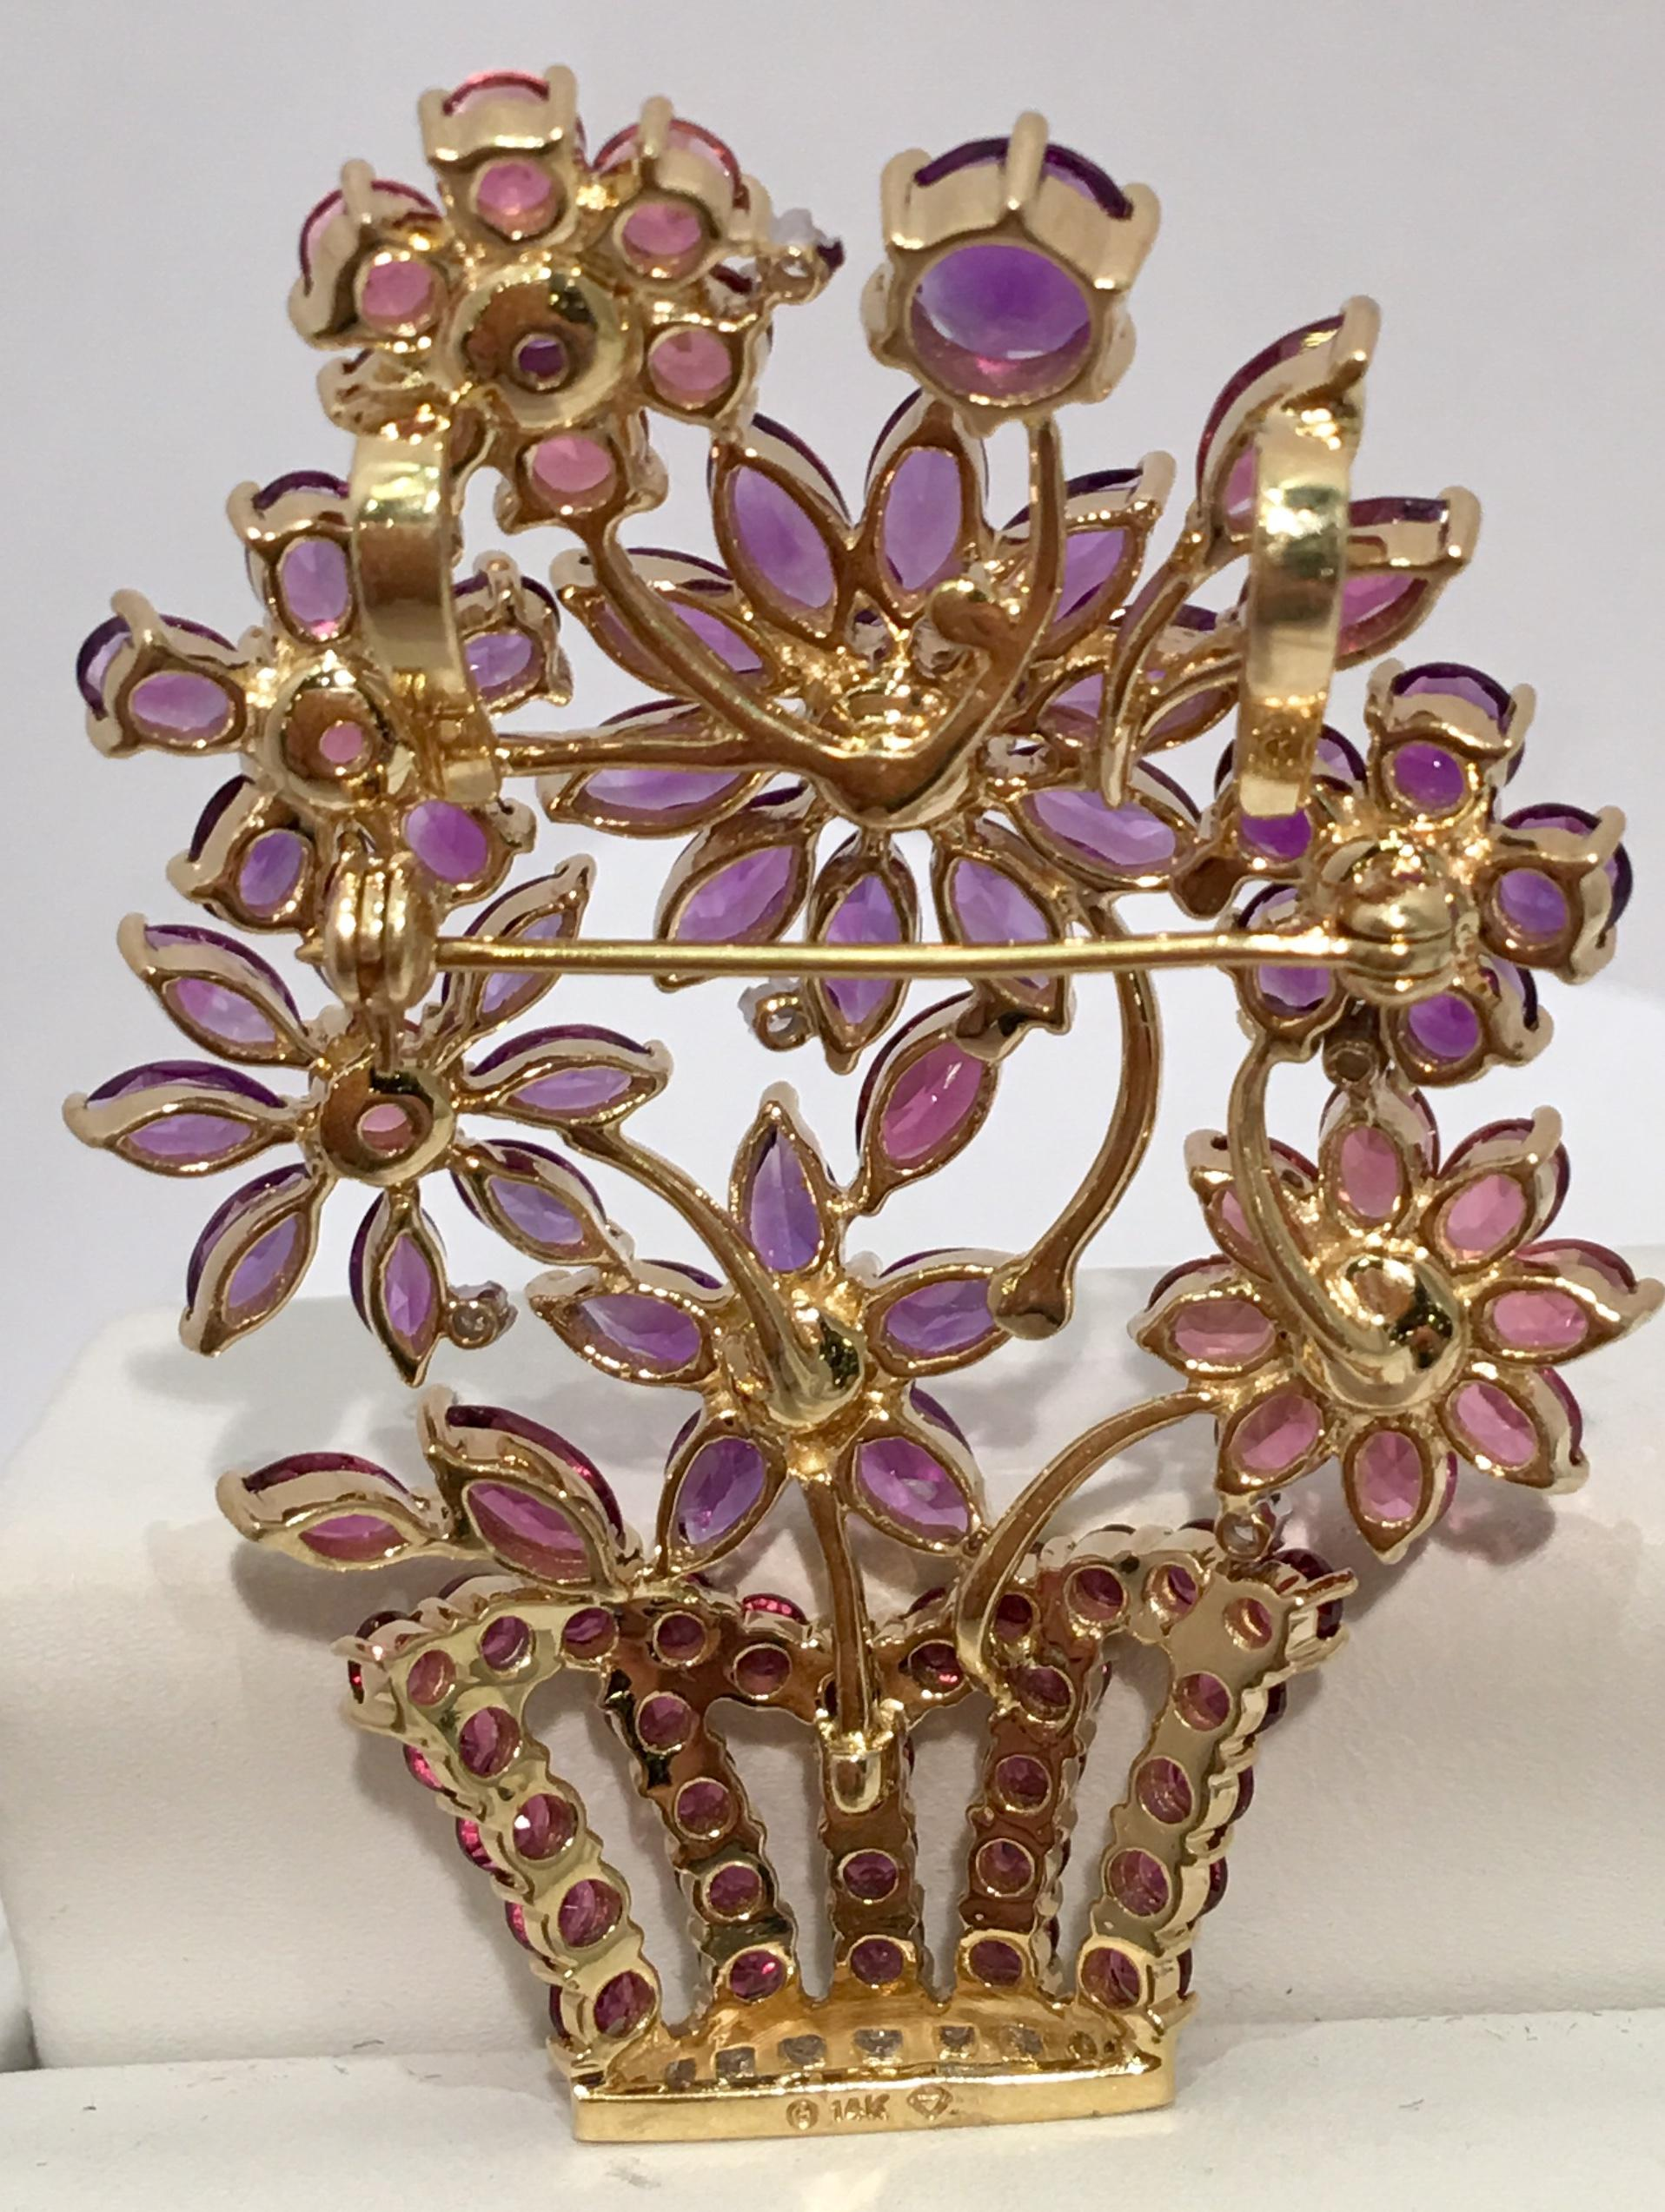 fe2b4843540 Amethyst, Pink Sapphire and Diamond Flowers 14 Karat Gold Brooch Large  Pendant at 1stdibs